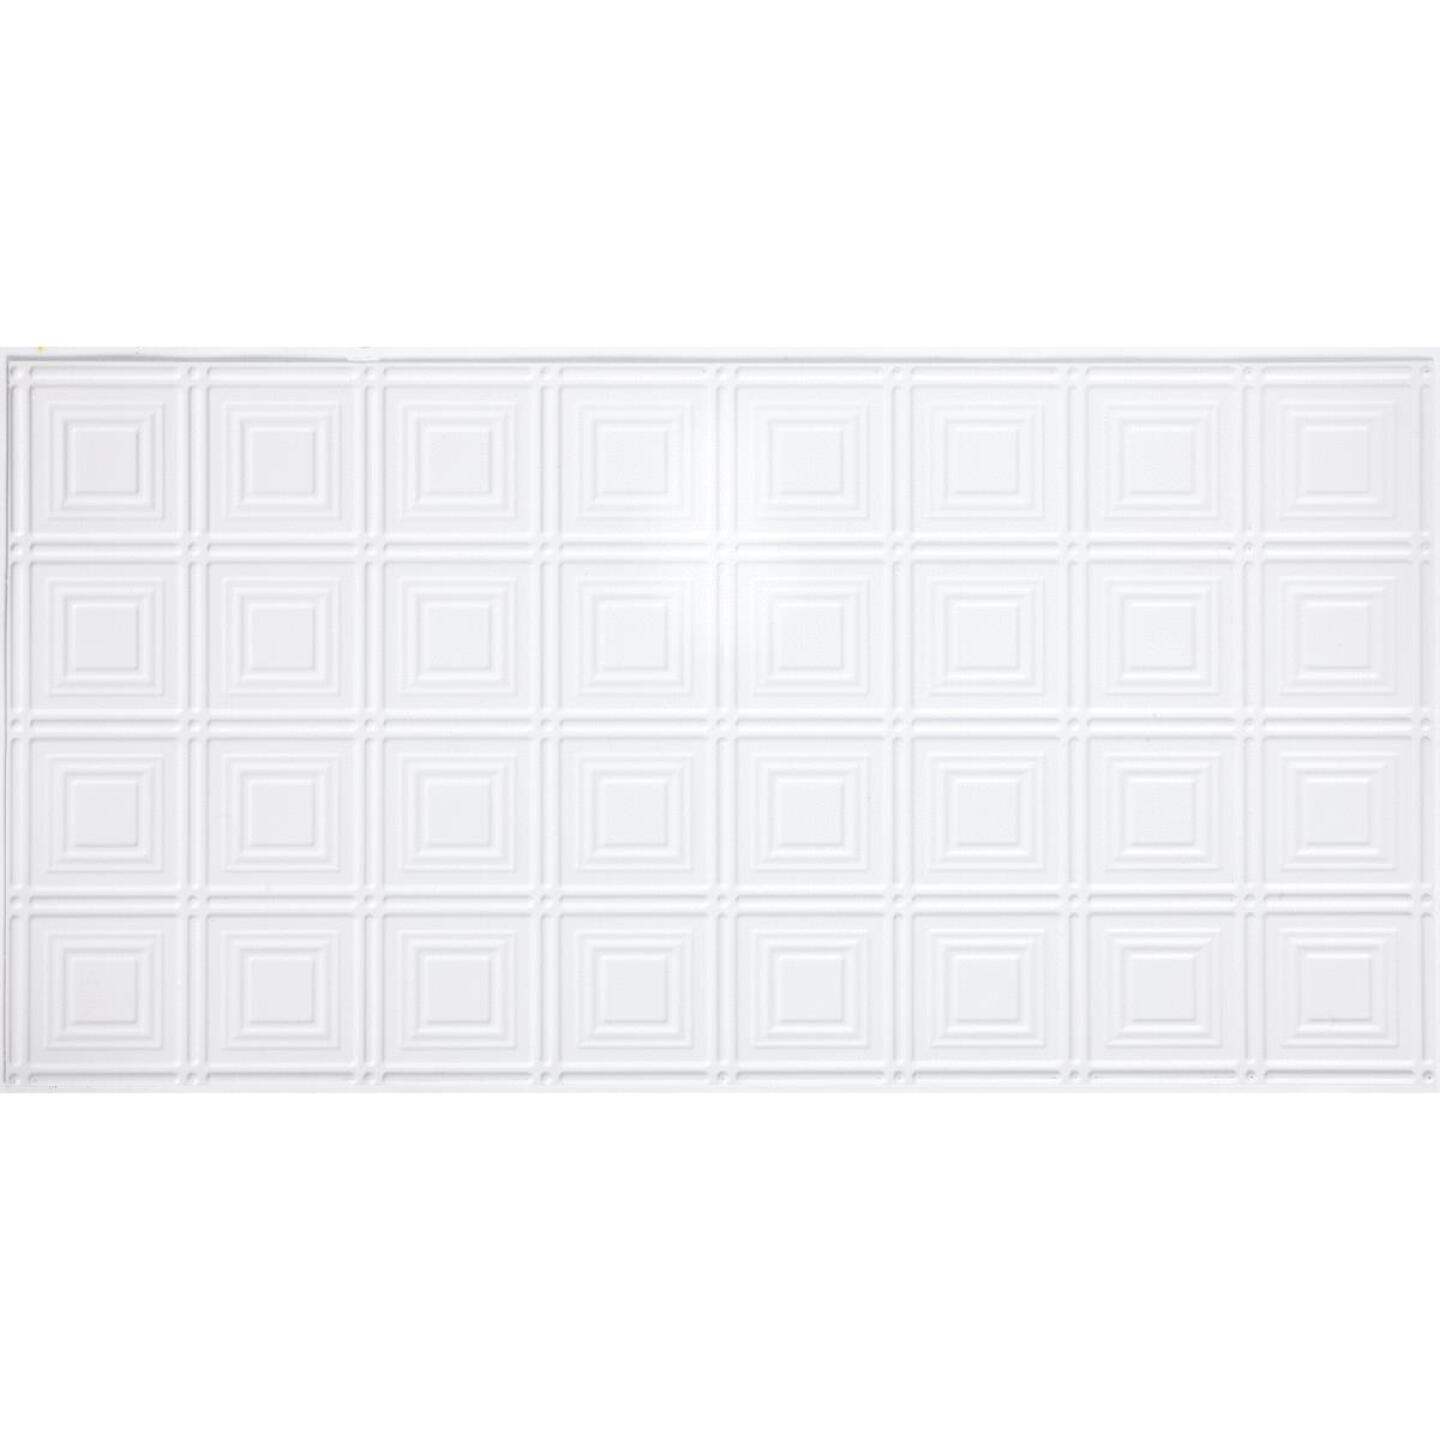 Dimensions 2 Ft. x 4 Ft. White 6 In. Square Pattern Tin Look Nonsuspended Ceiling Tile & Backsplash Image 2